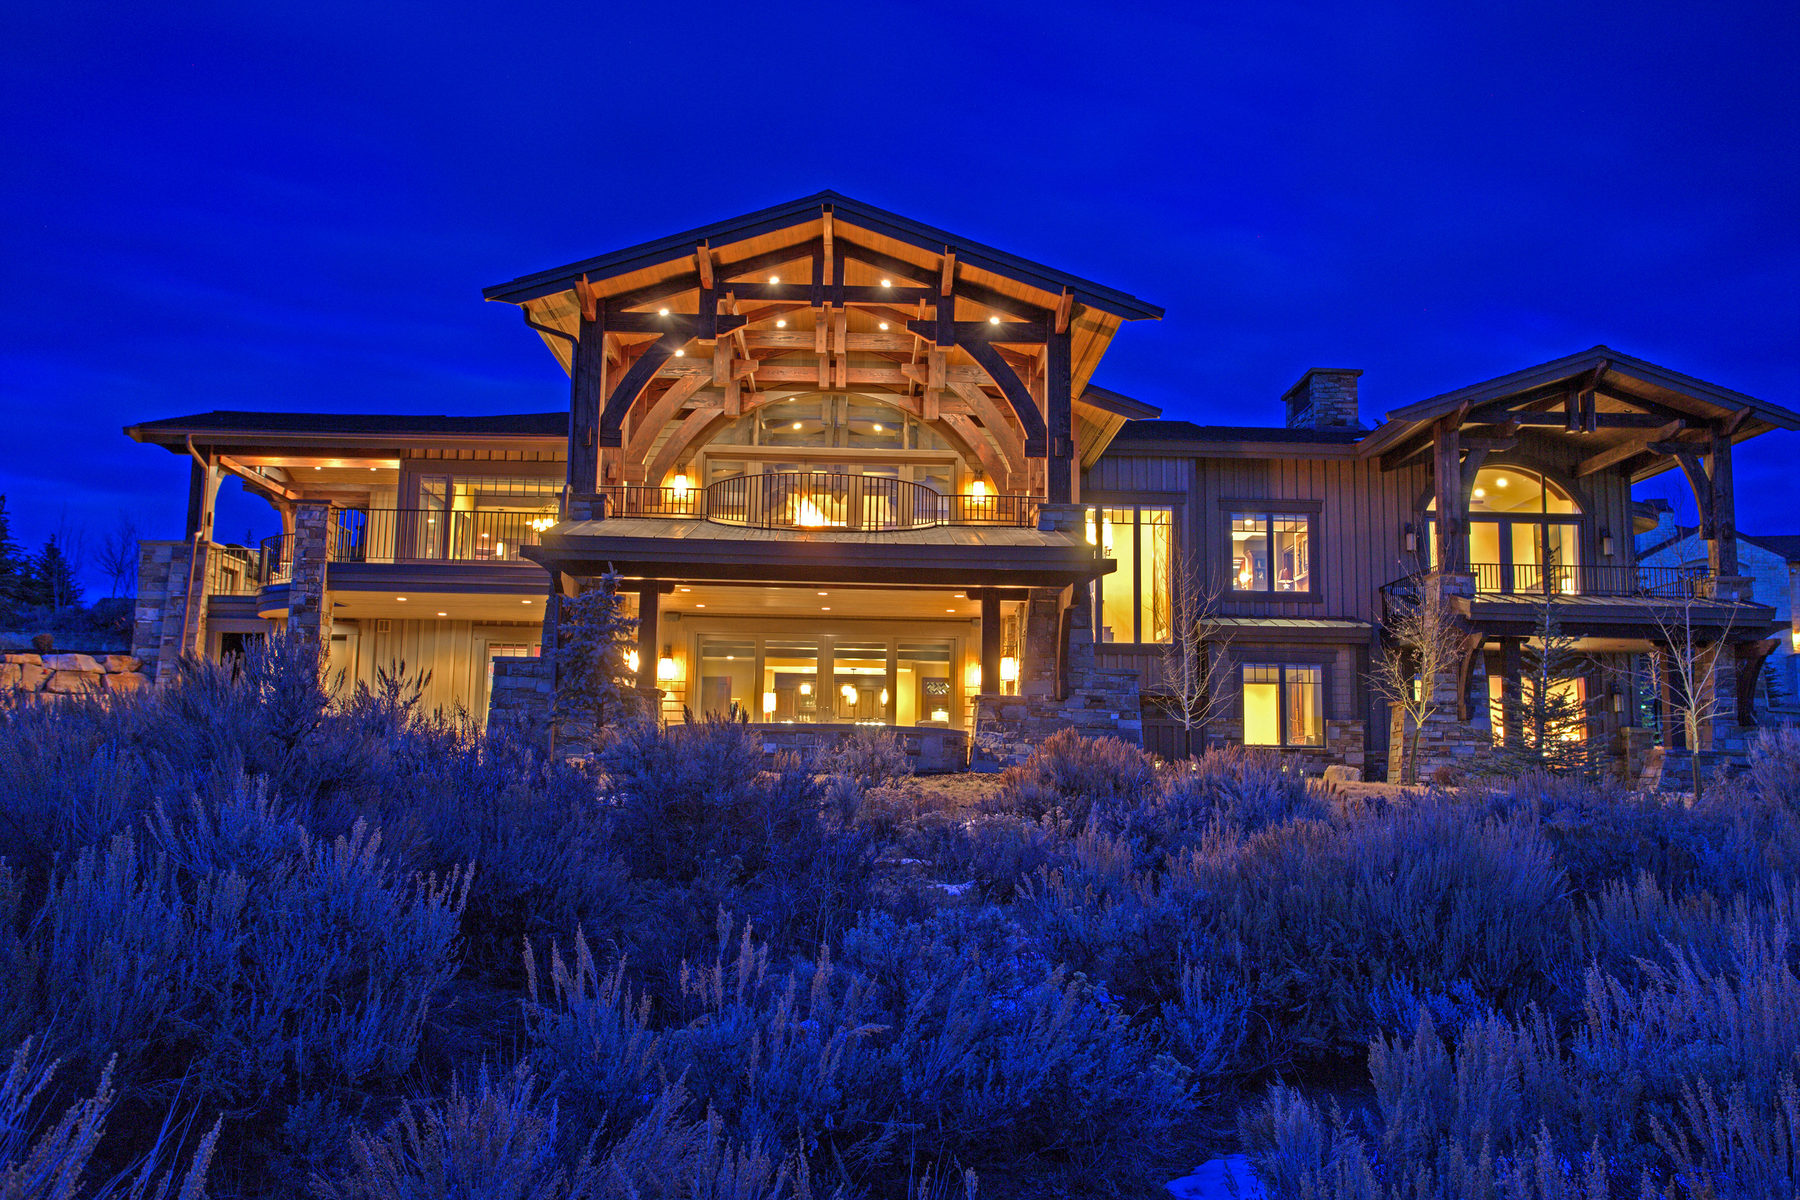 独户住宅 为 销售 在 Spectacular Home in Promontory That Was Featured In The 2013 Park City Parade of 2817 Blue Sage Trl 帕克城, 犹他州, 84098 美国